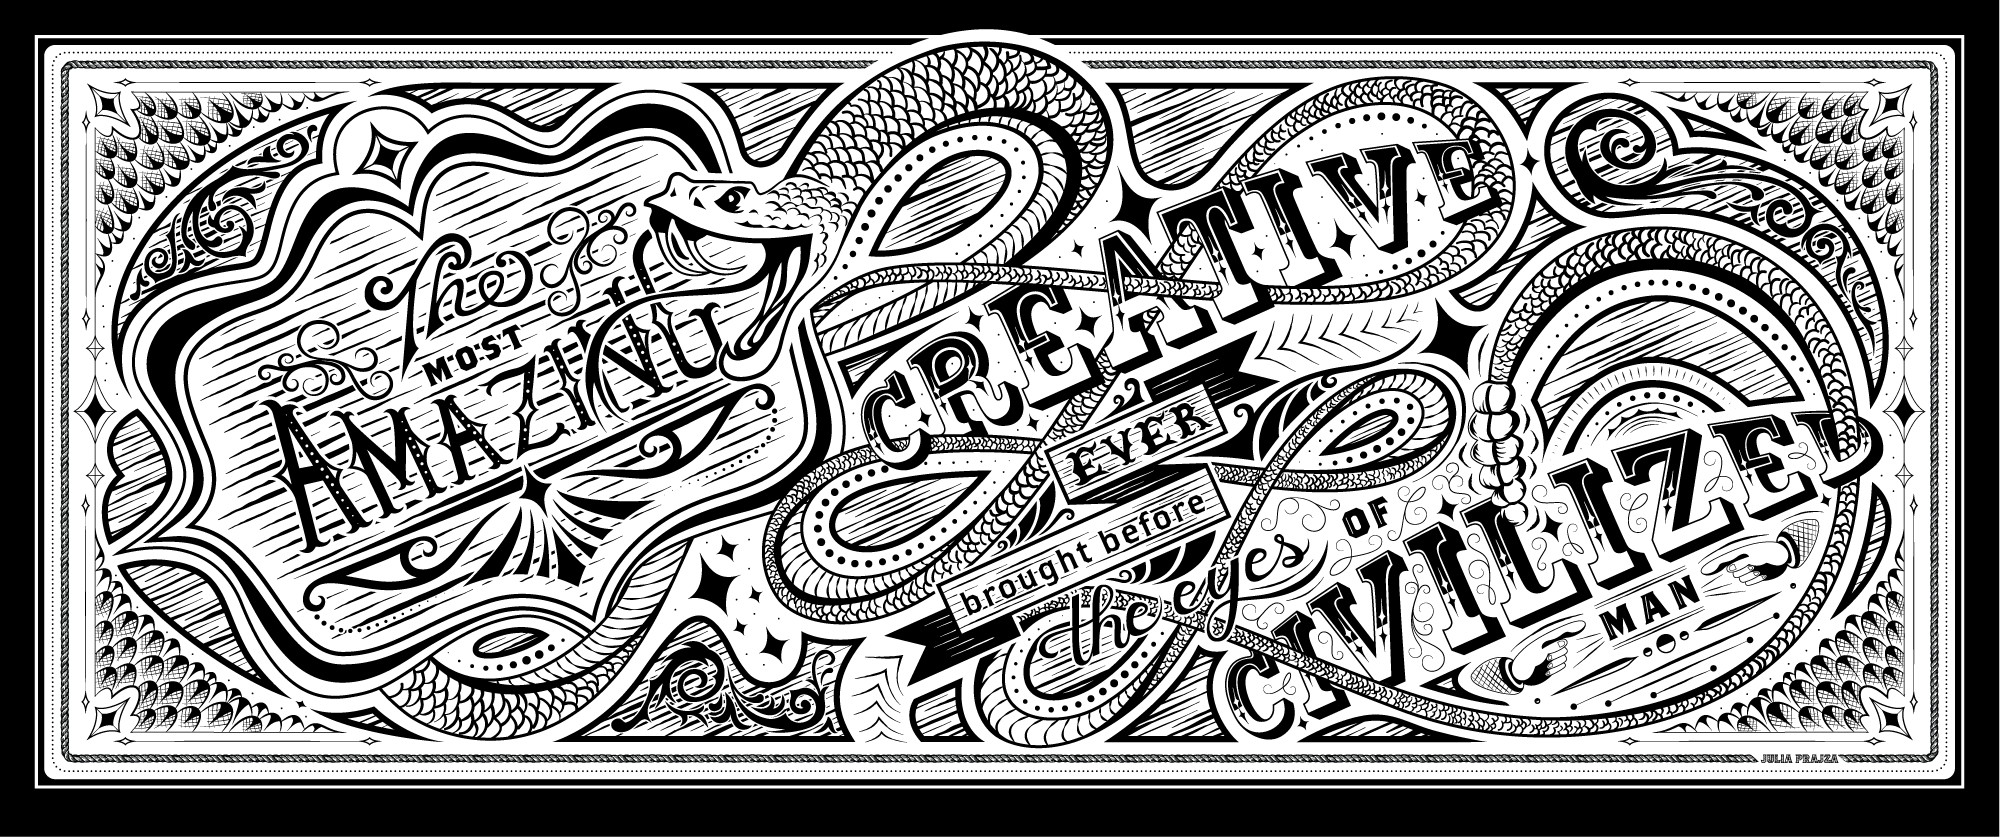 AFTER:  Final digital and vectorized design ready for print.